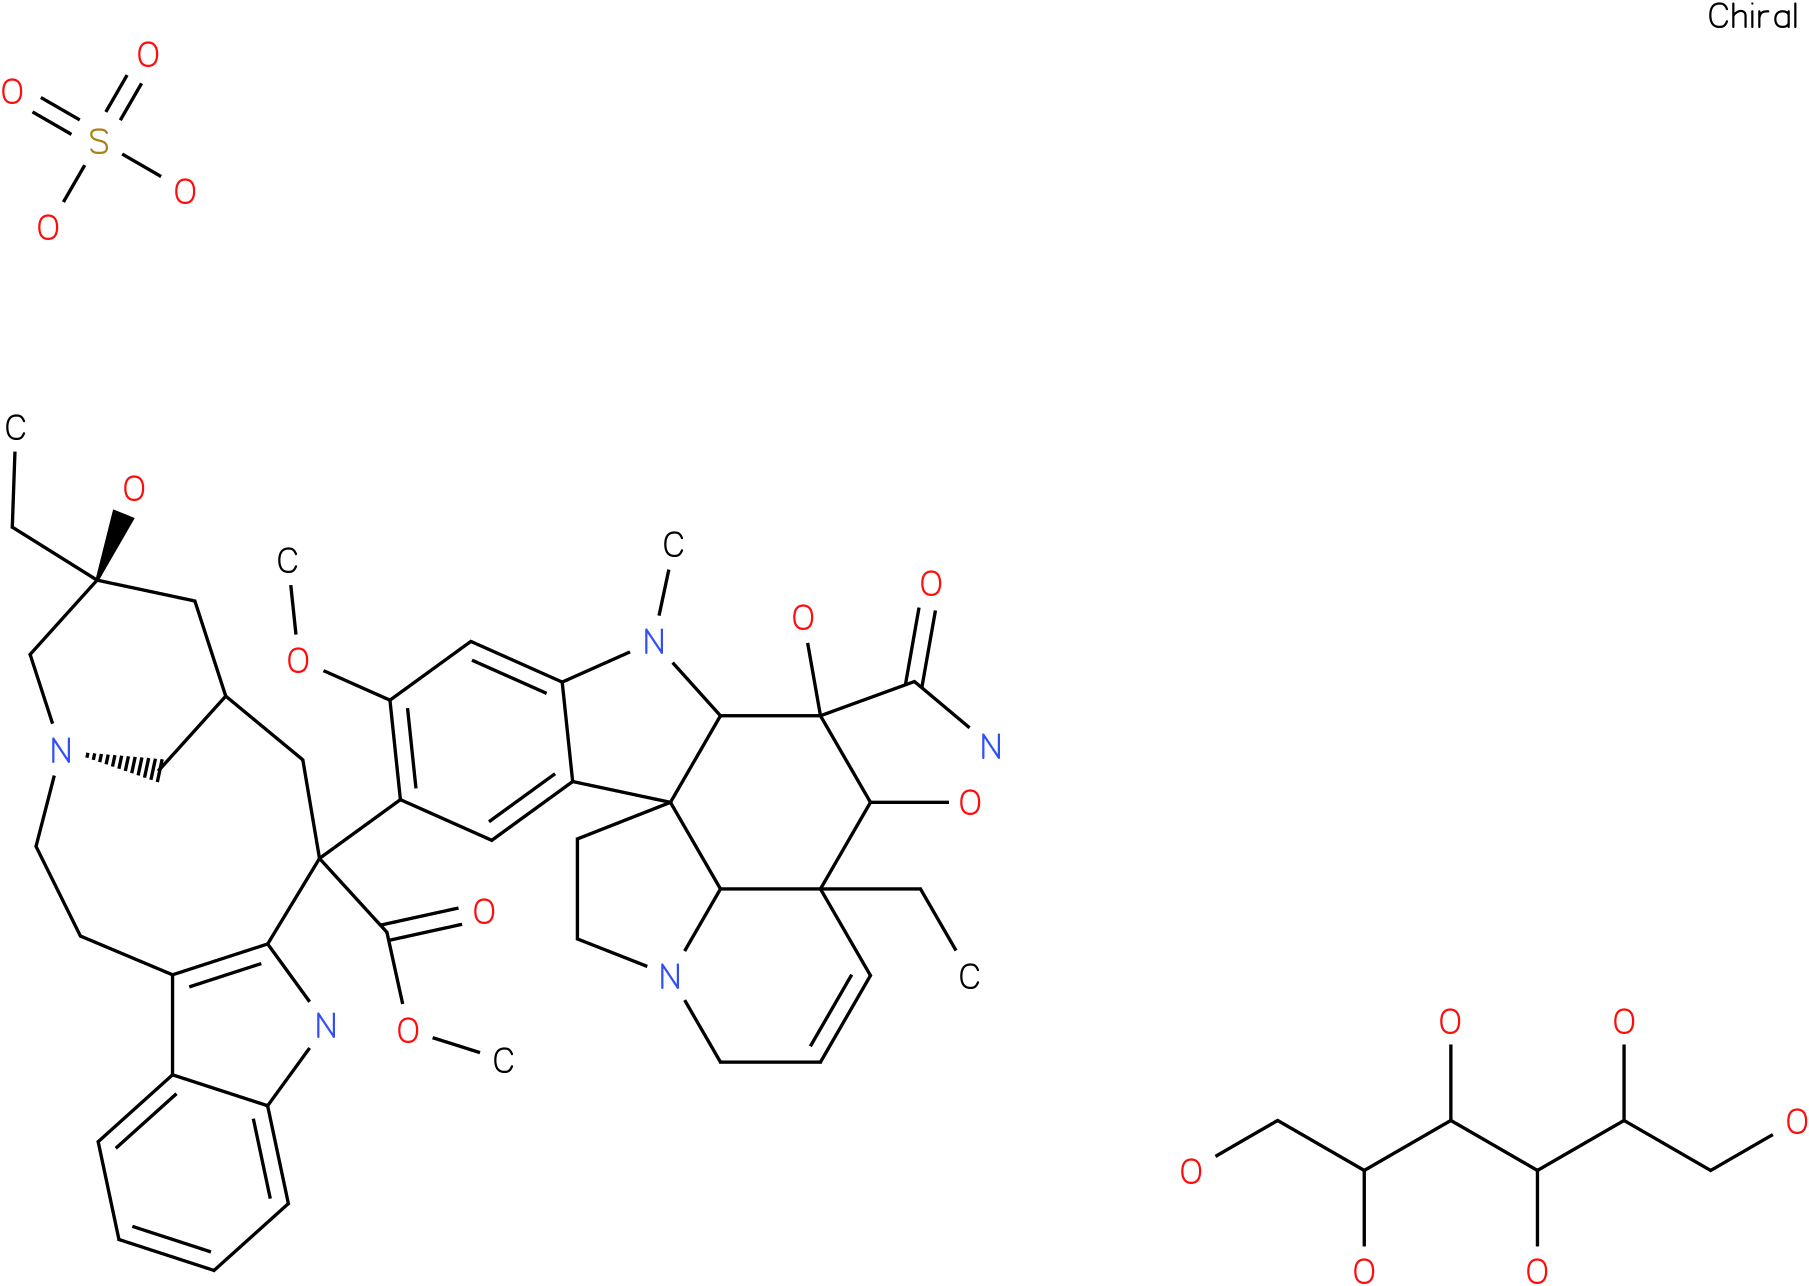 1H-INDOLE-2-CARBOXYLIC ACID,5-FLUORO-3-FORMYL-,METHYL ESTER